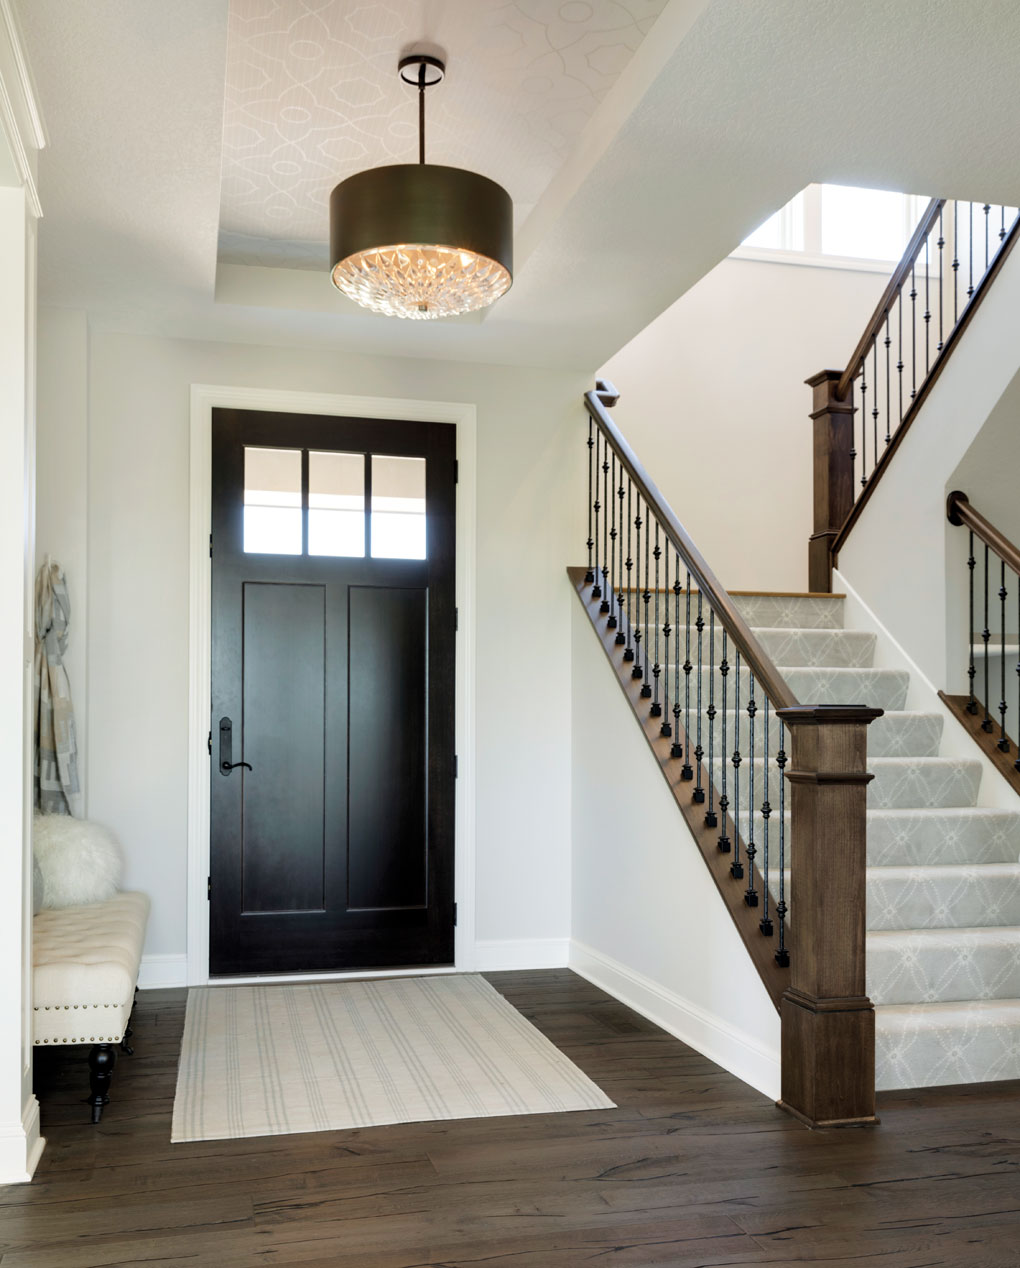 An entry opens up to a staircase leading to an upper level and elegant light hanging overhead.